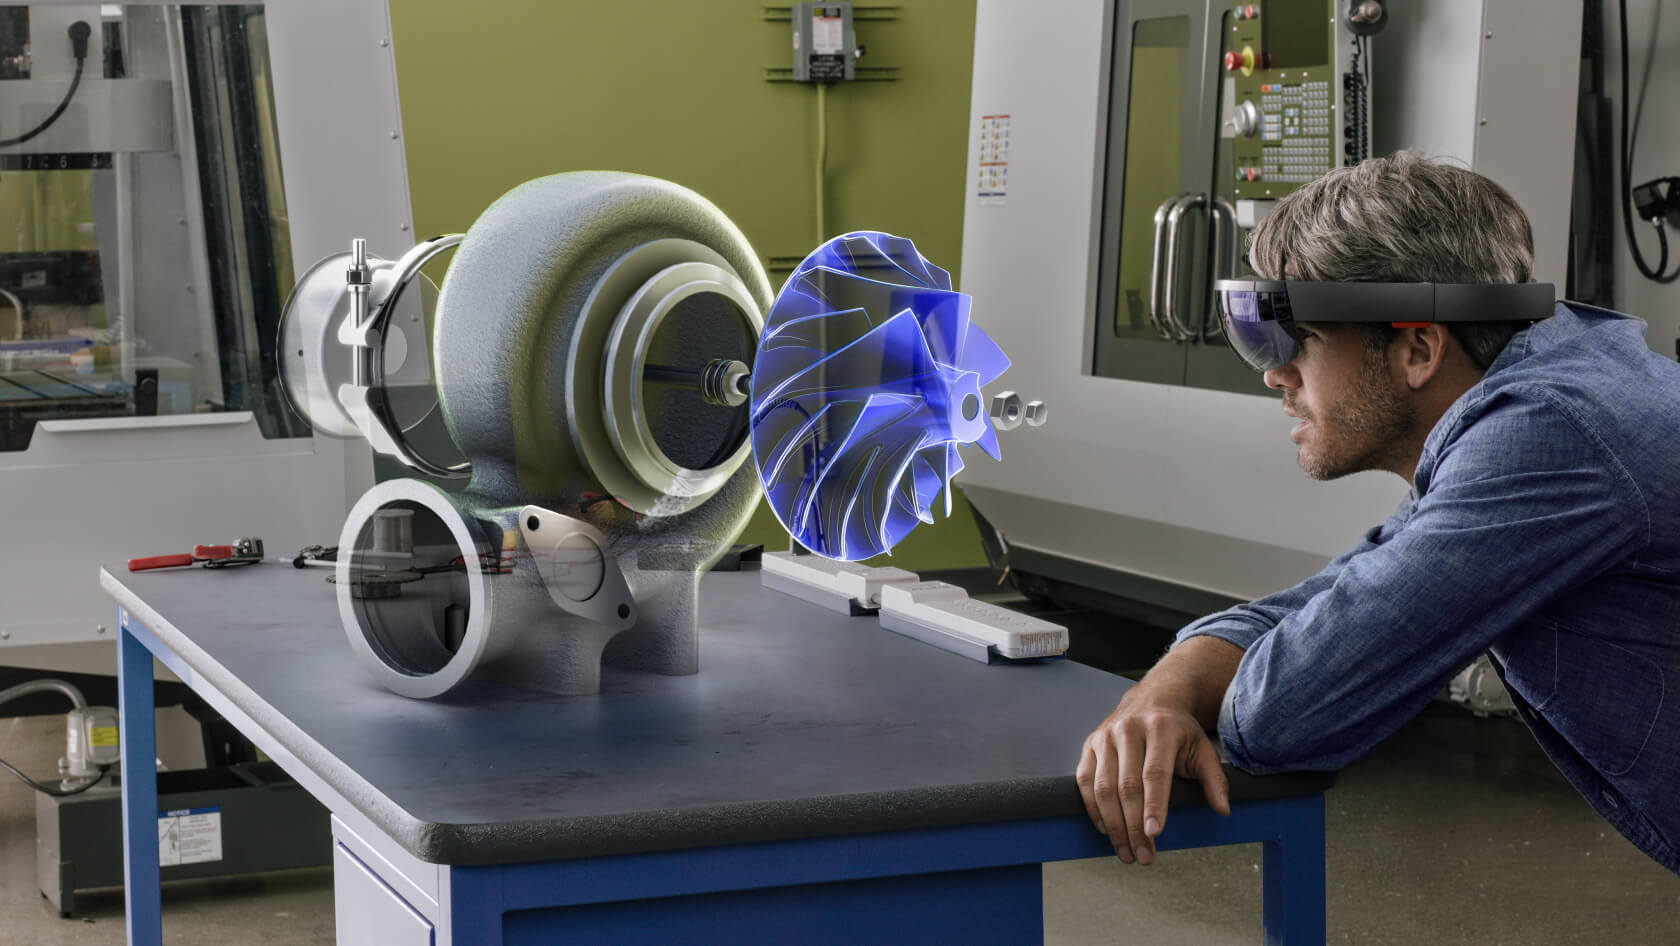 AR firm sues Microsoft over HoloLens patent infringements